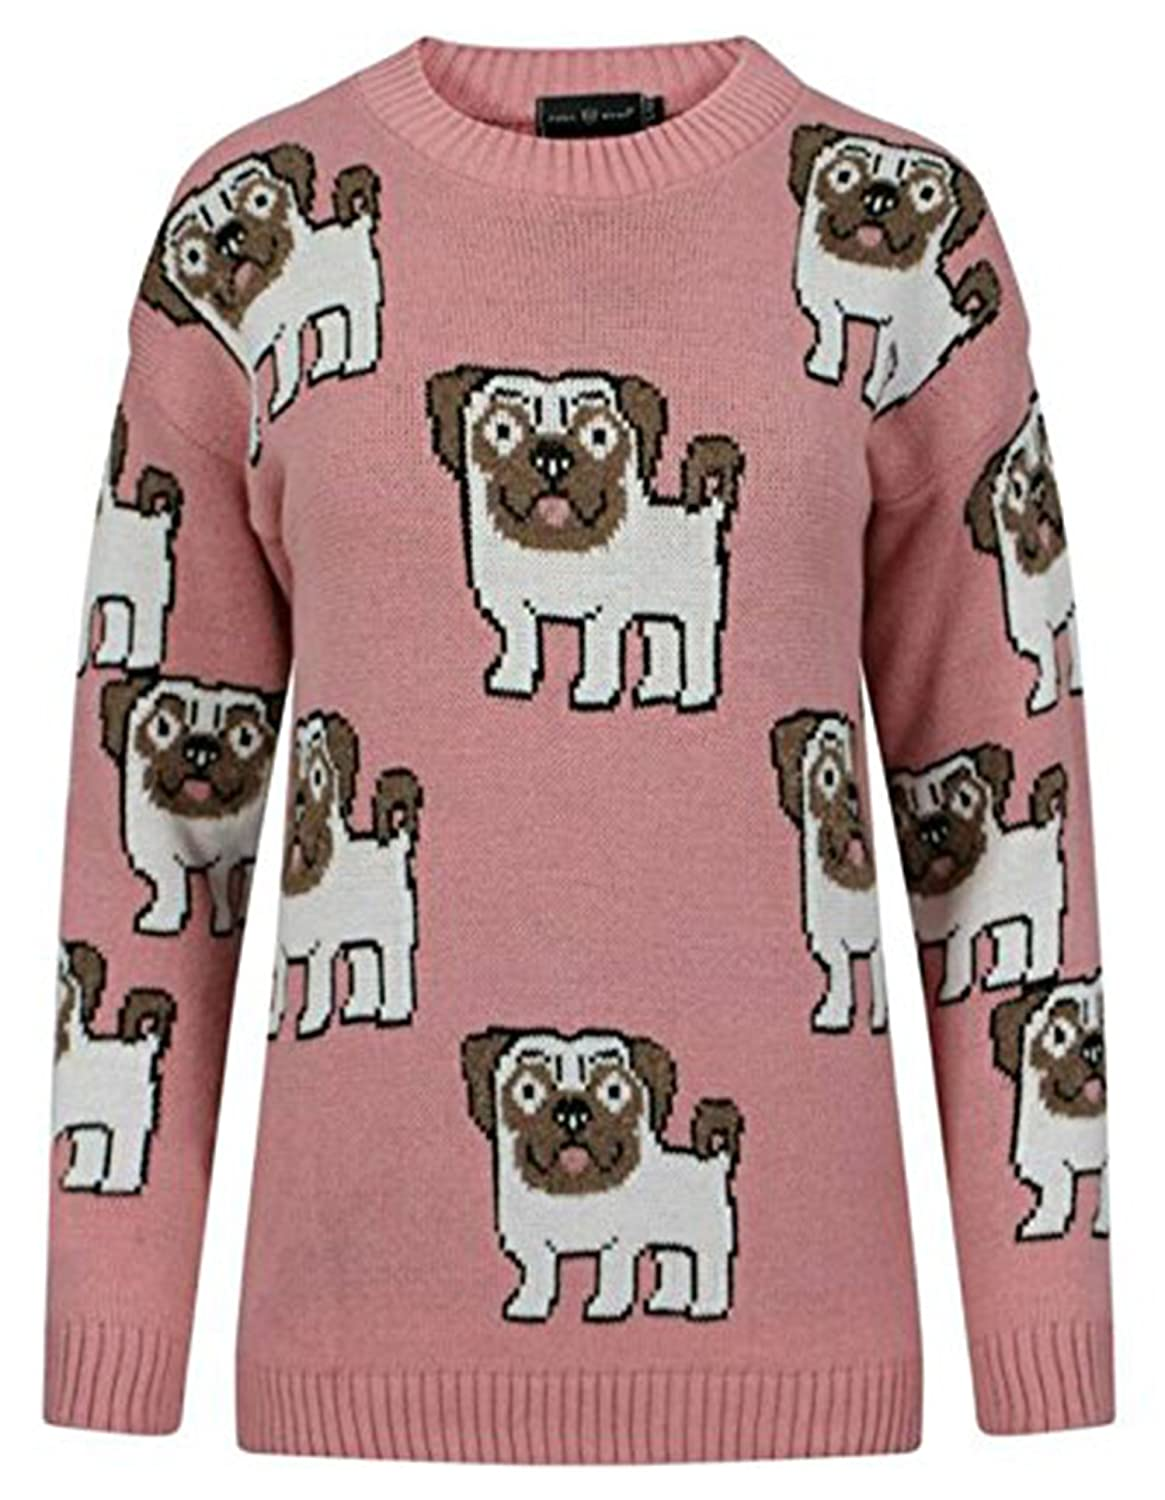 Womens Multi Pug Dog Printed Long Sleeves Jumper Sweater